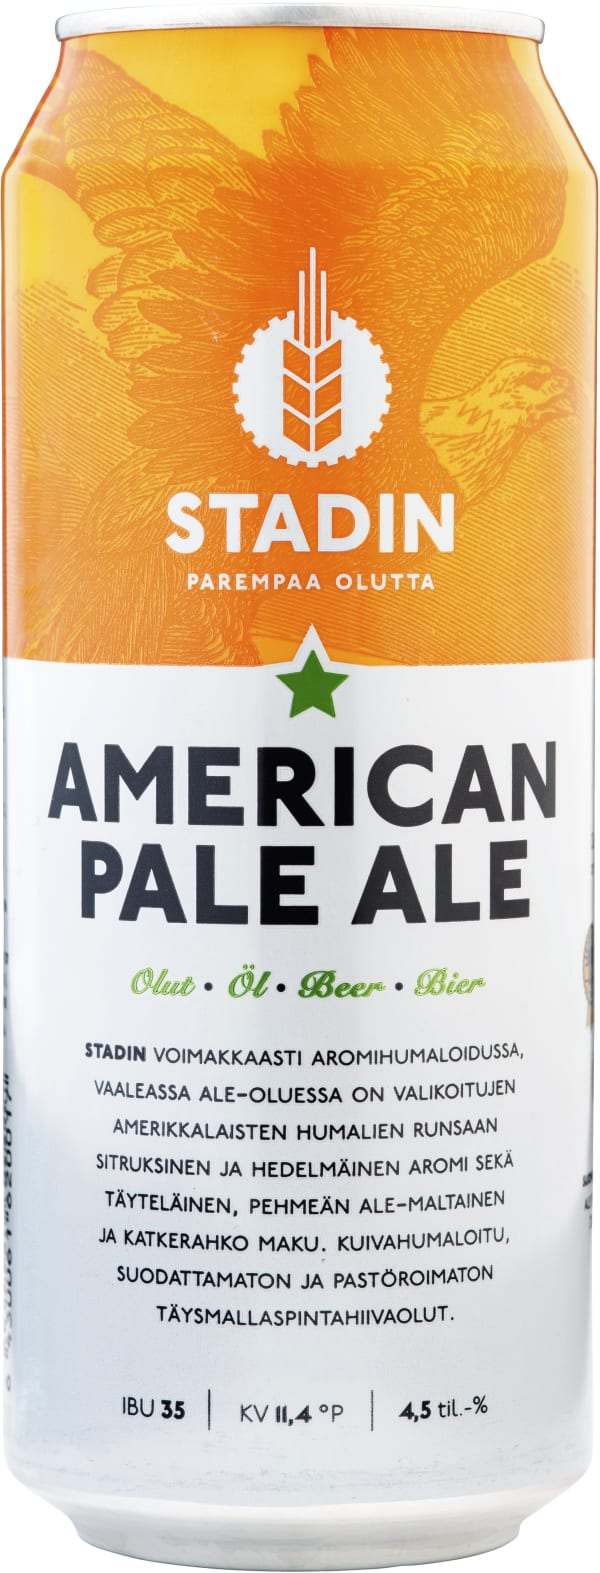 Stadin American Pale Ale can